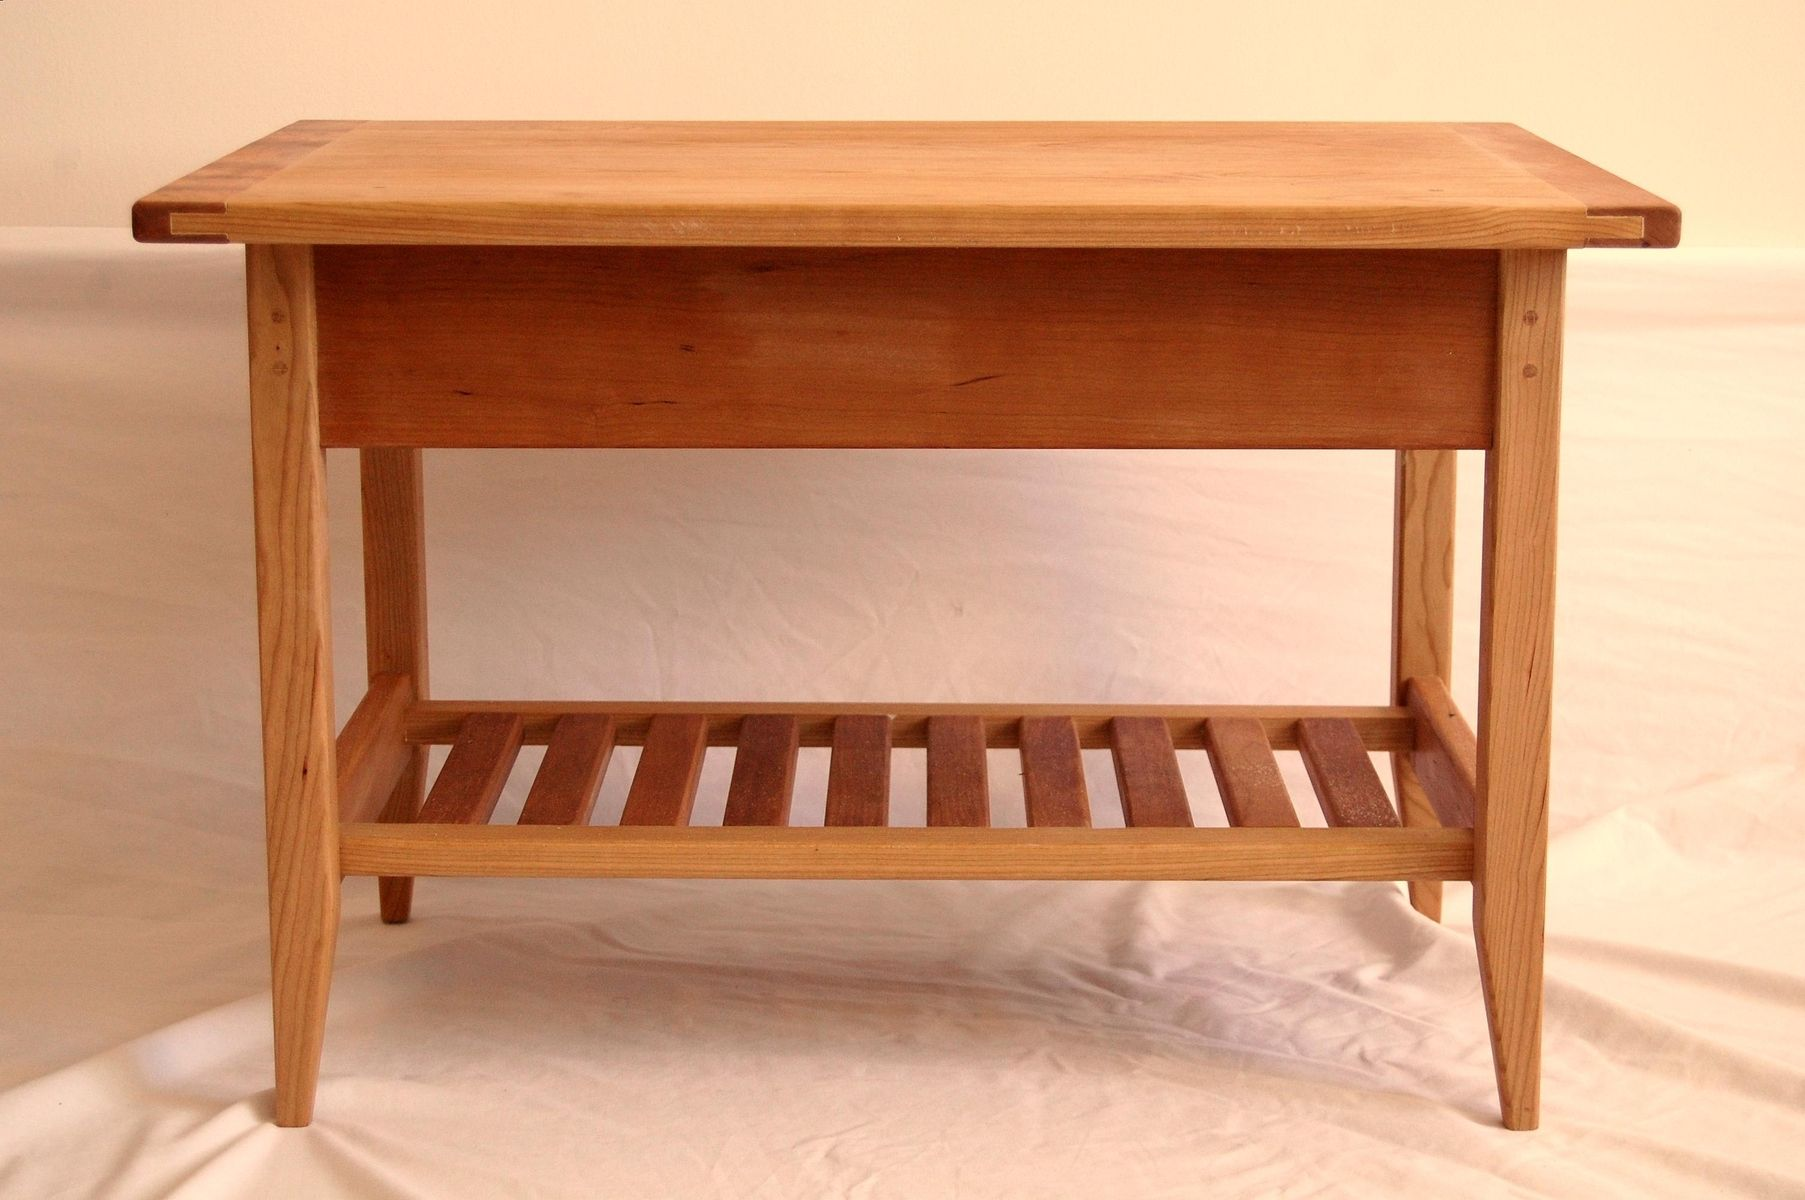 Buy A Custom Cherry Shaker Style Coffee Table With Drawer